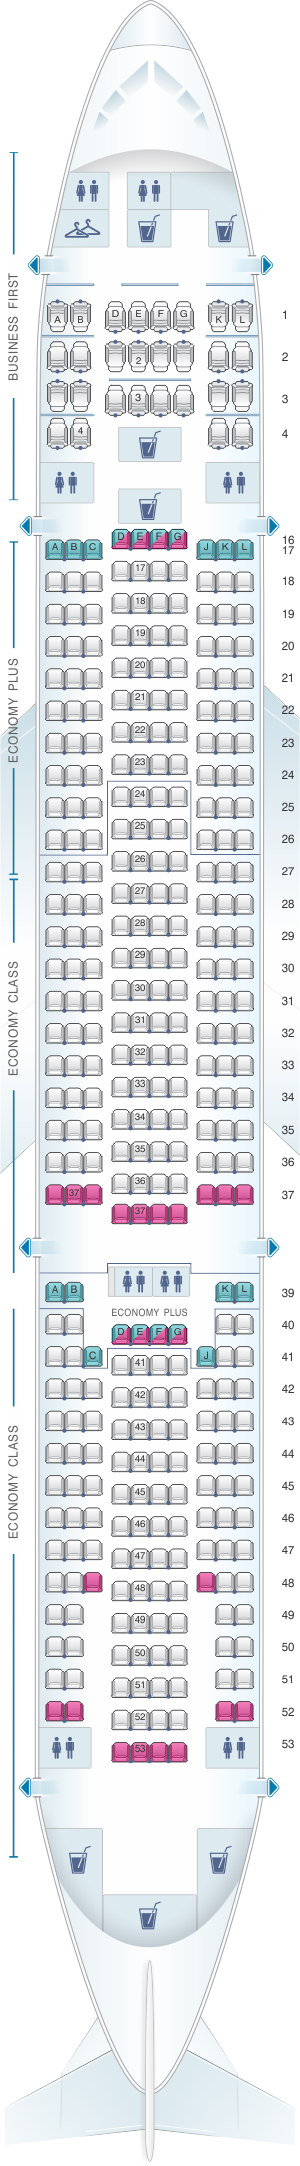 Seat map for United Airlines Boeing B777 200 (777) – version 5